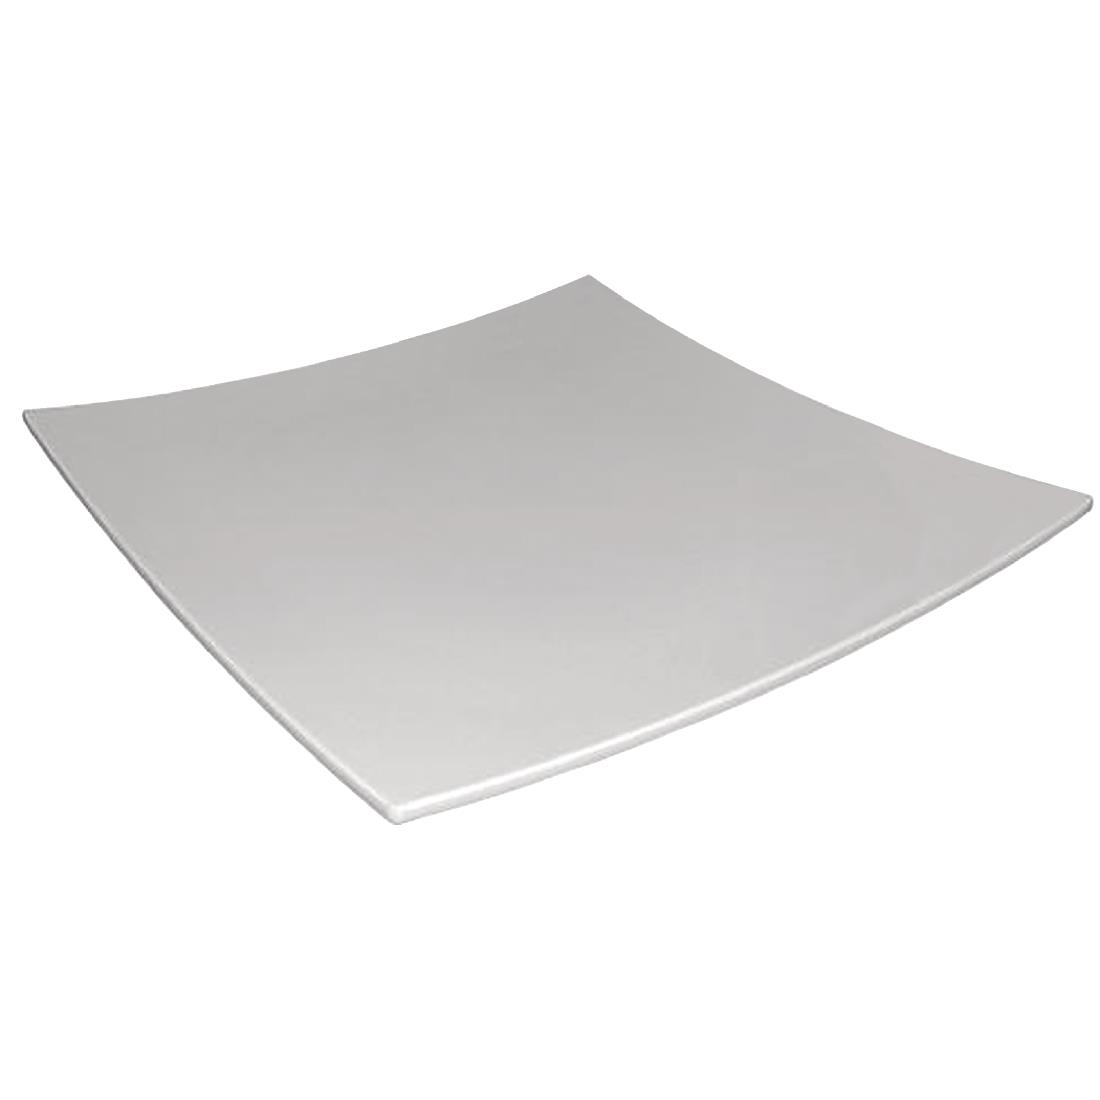 Image of Curved Square Melamine Plate White 400mm